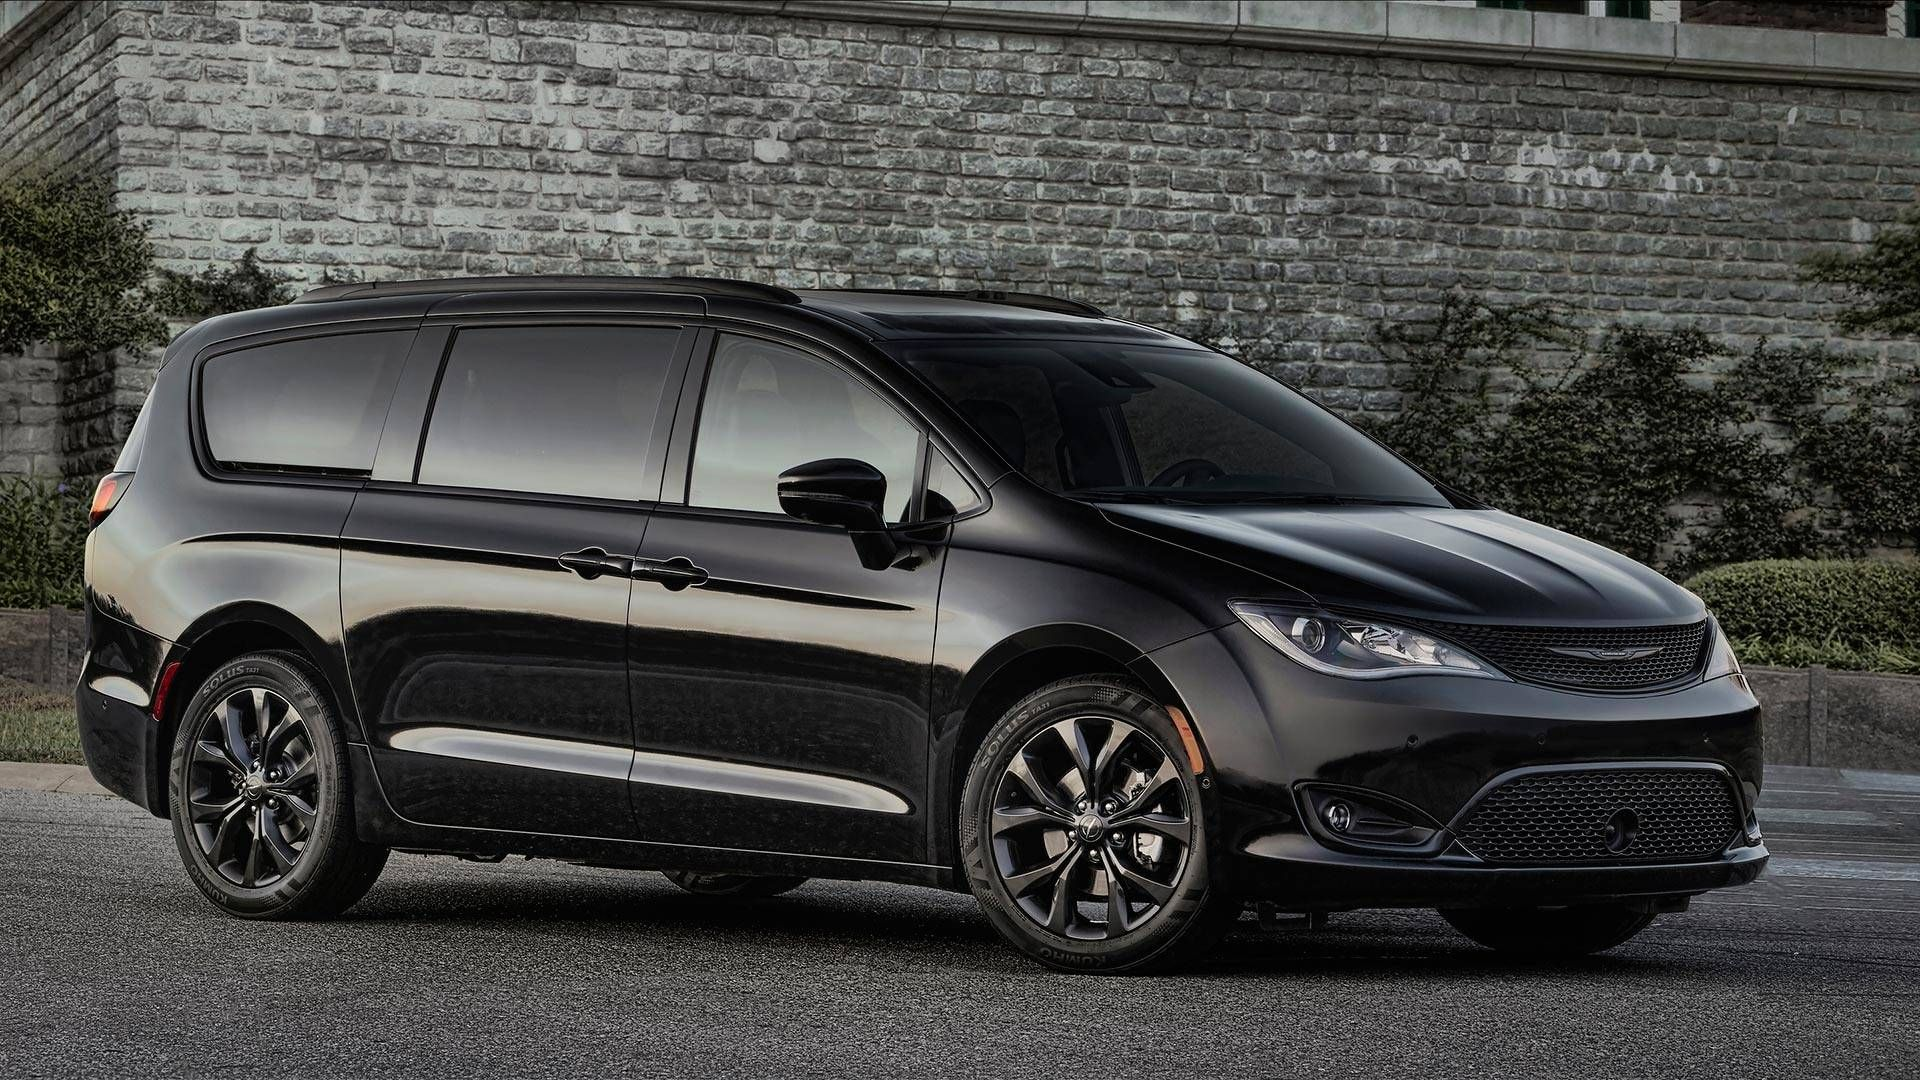 The Freshly Announced 2021 Chrysler Pacifica Will Show Up Next Year And It Will Bring Some Upgrades The Mini Van Chrysler Town And Country Chrysler Pacifica